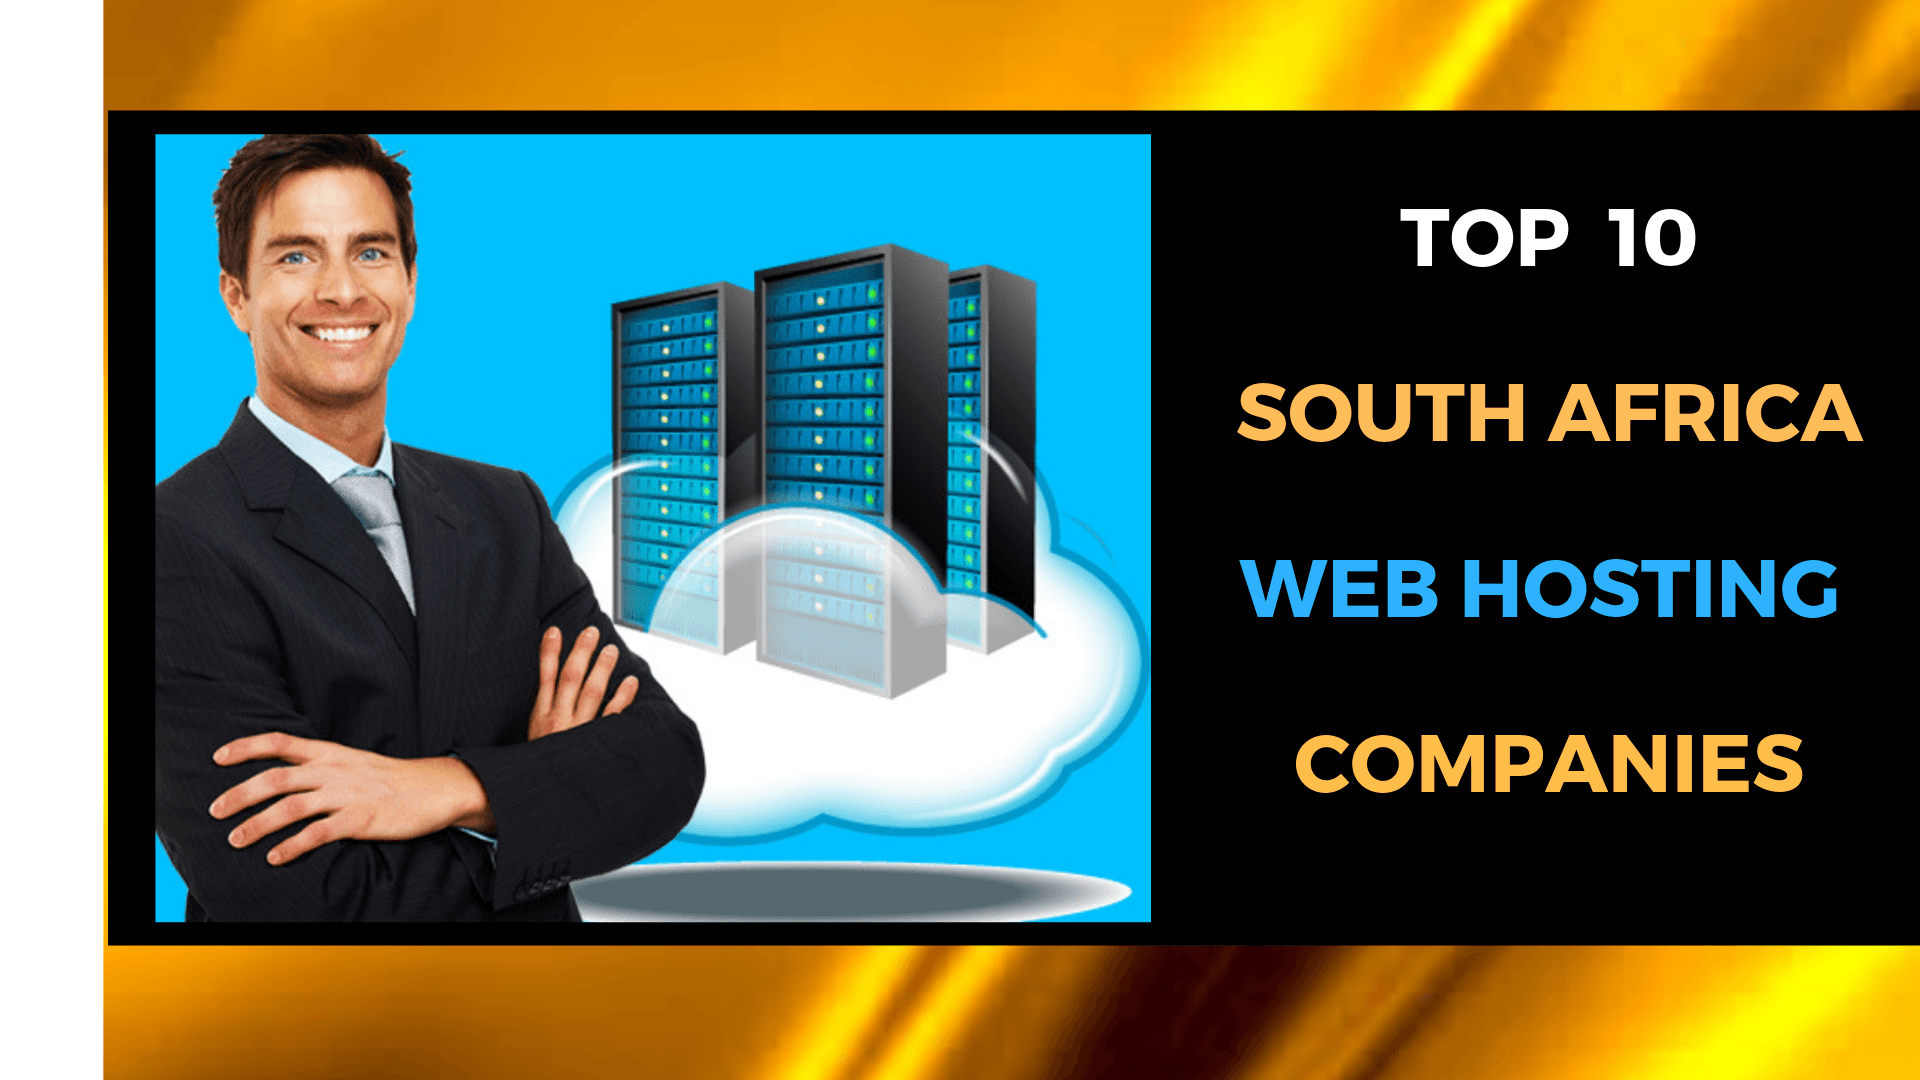 Top 10 Web Hosting in South Africa